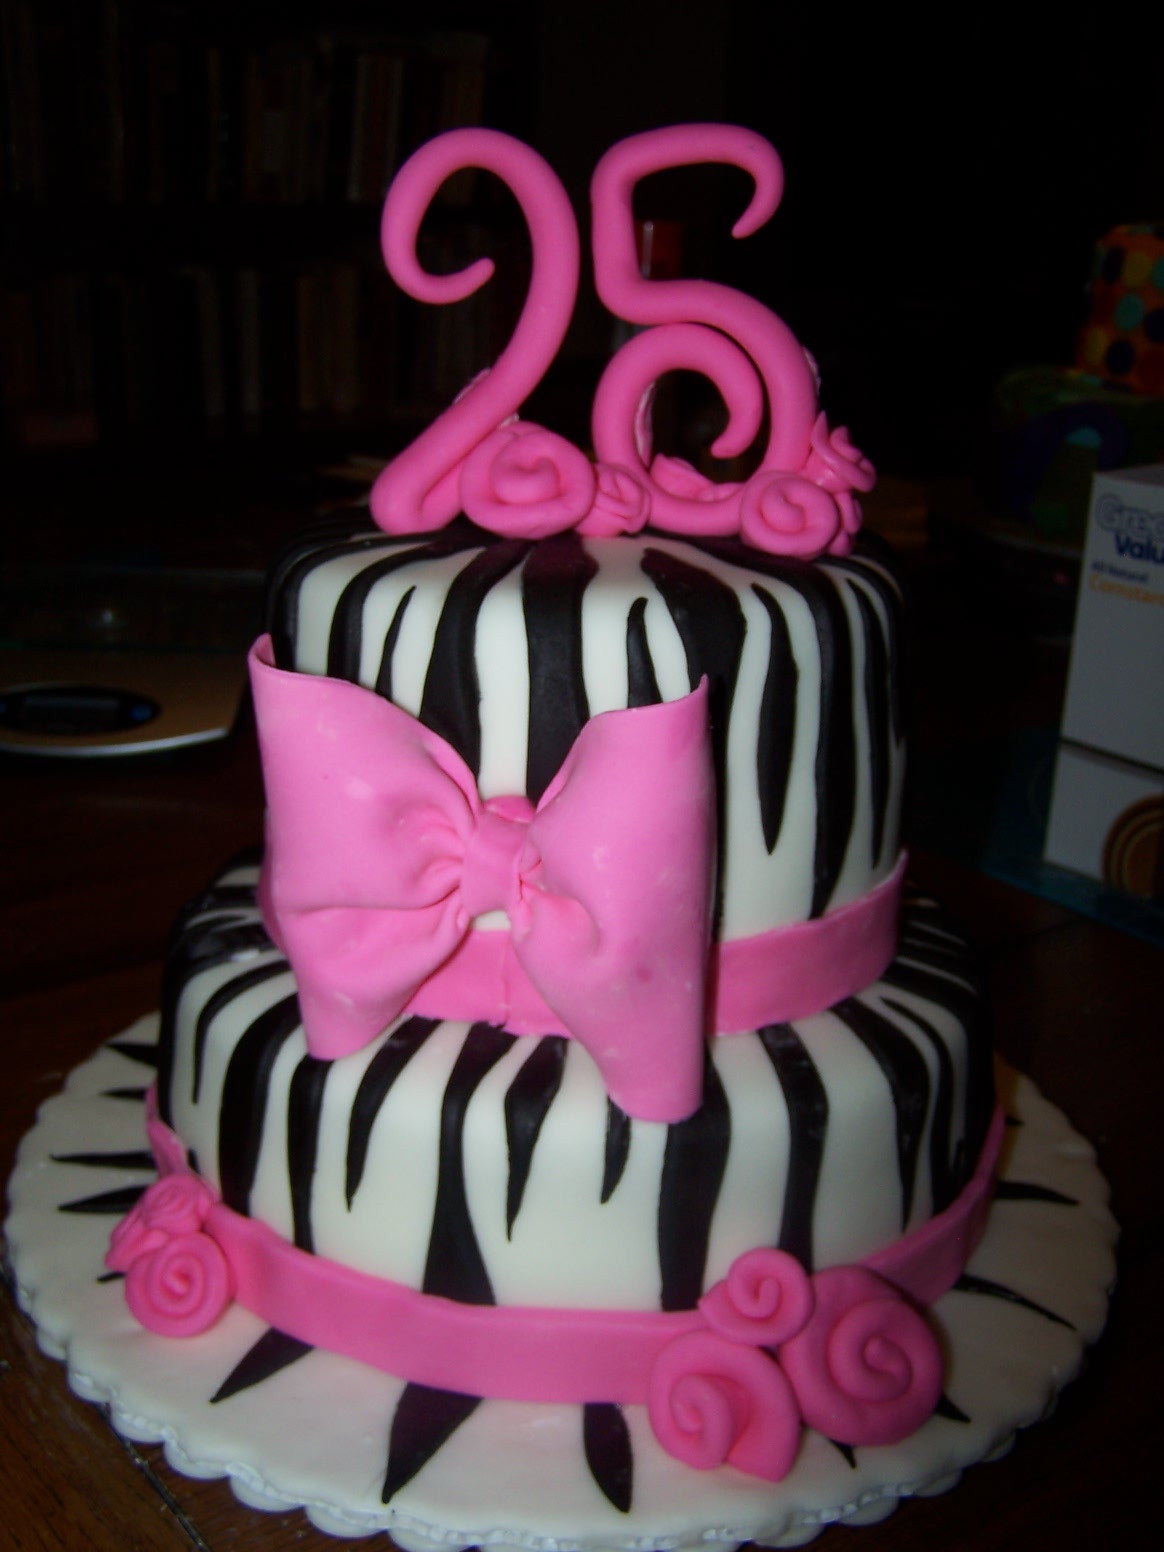 Best ideas about 25 Birthday Cake . Save or Pin Learning To Fly Cakes and Pastries Katherine s 25th Now.